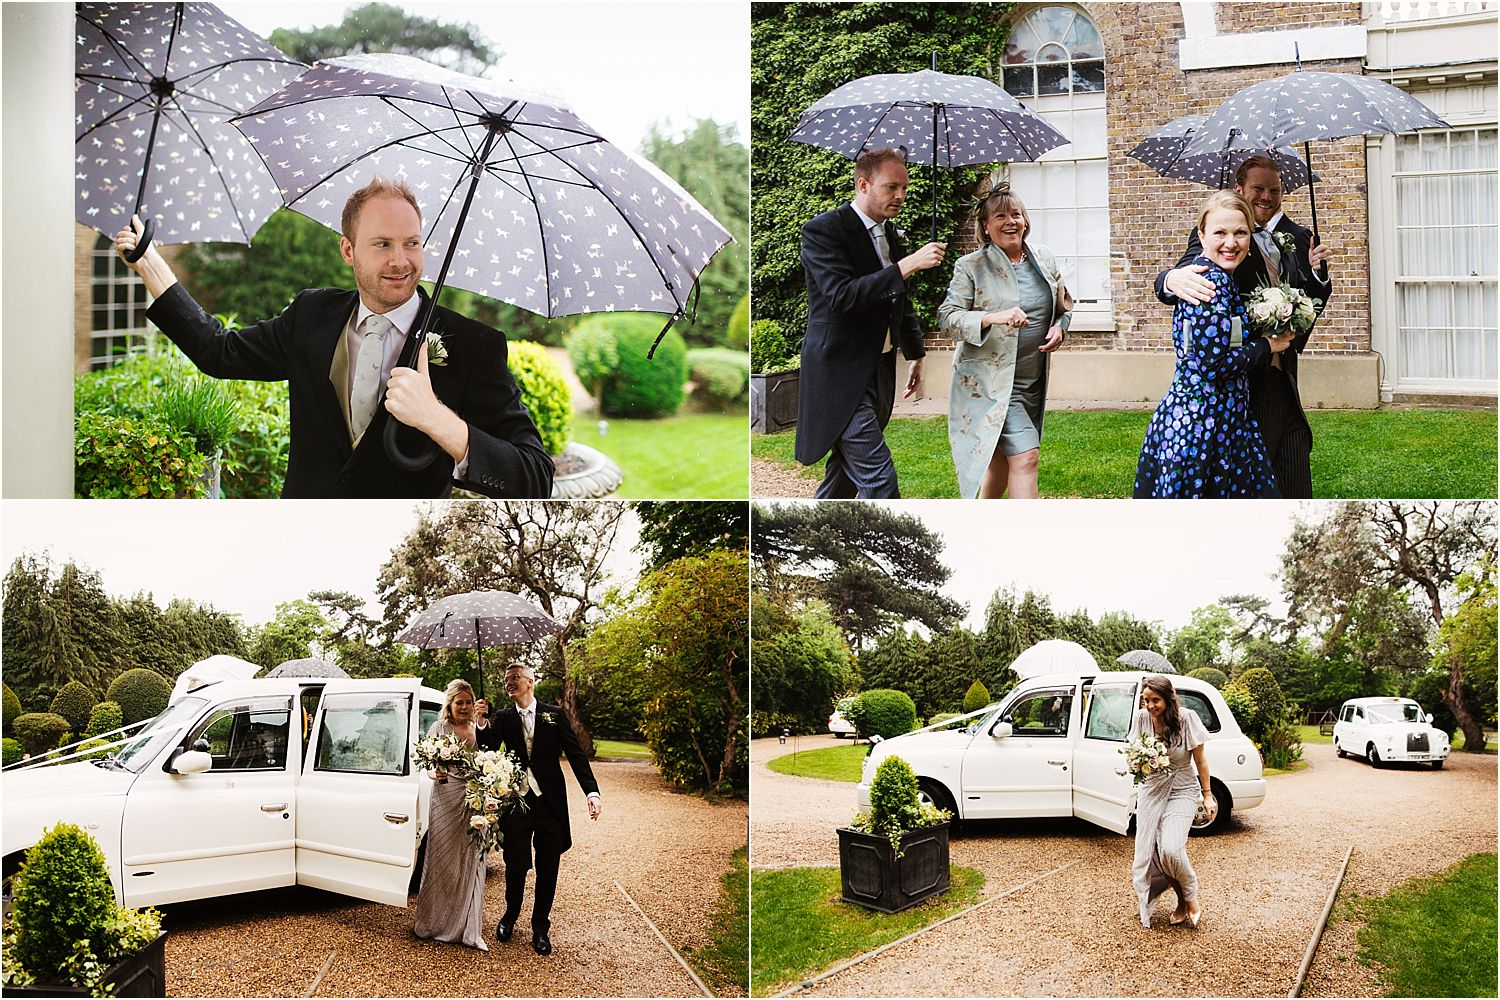 guests and bridesmaids arriving with umbrellas in the rain at Hampton Court House wedding with umbrellas